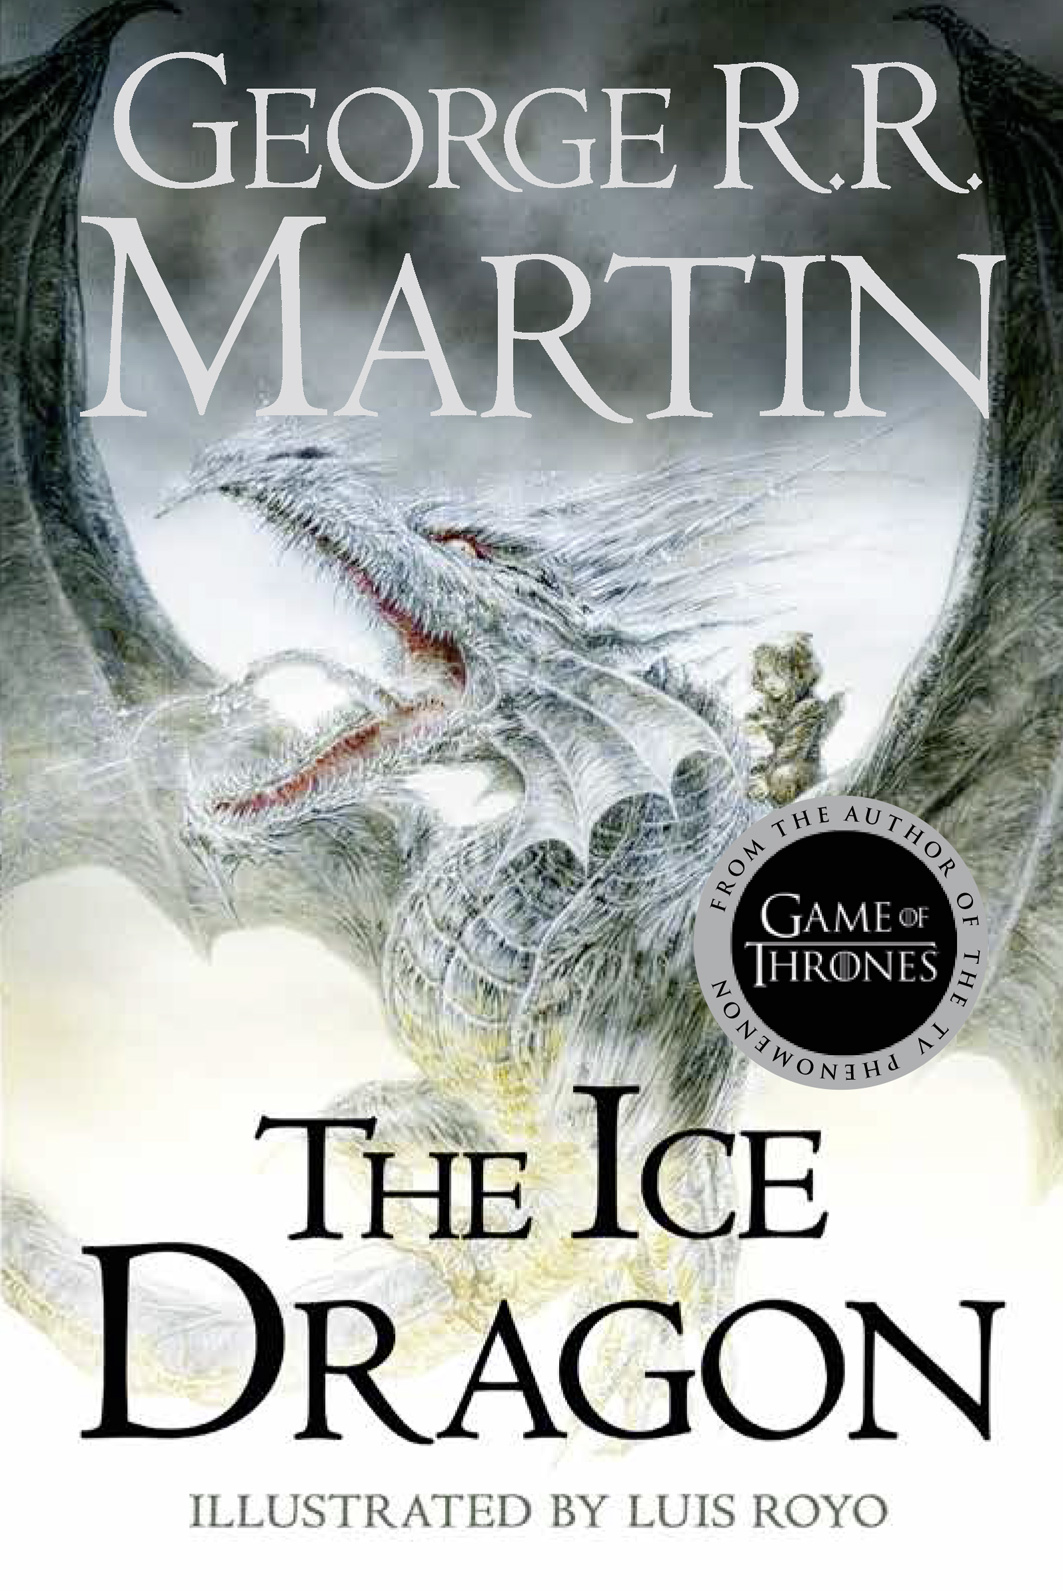 Джордж Р. Р. Мартин The Ice Dragon мартин джордж р р гарсиа мл элио антонссон линда мир льда и пламени